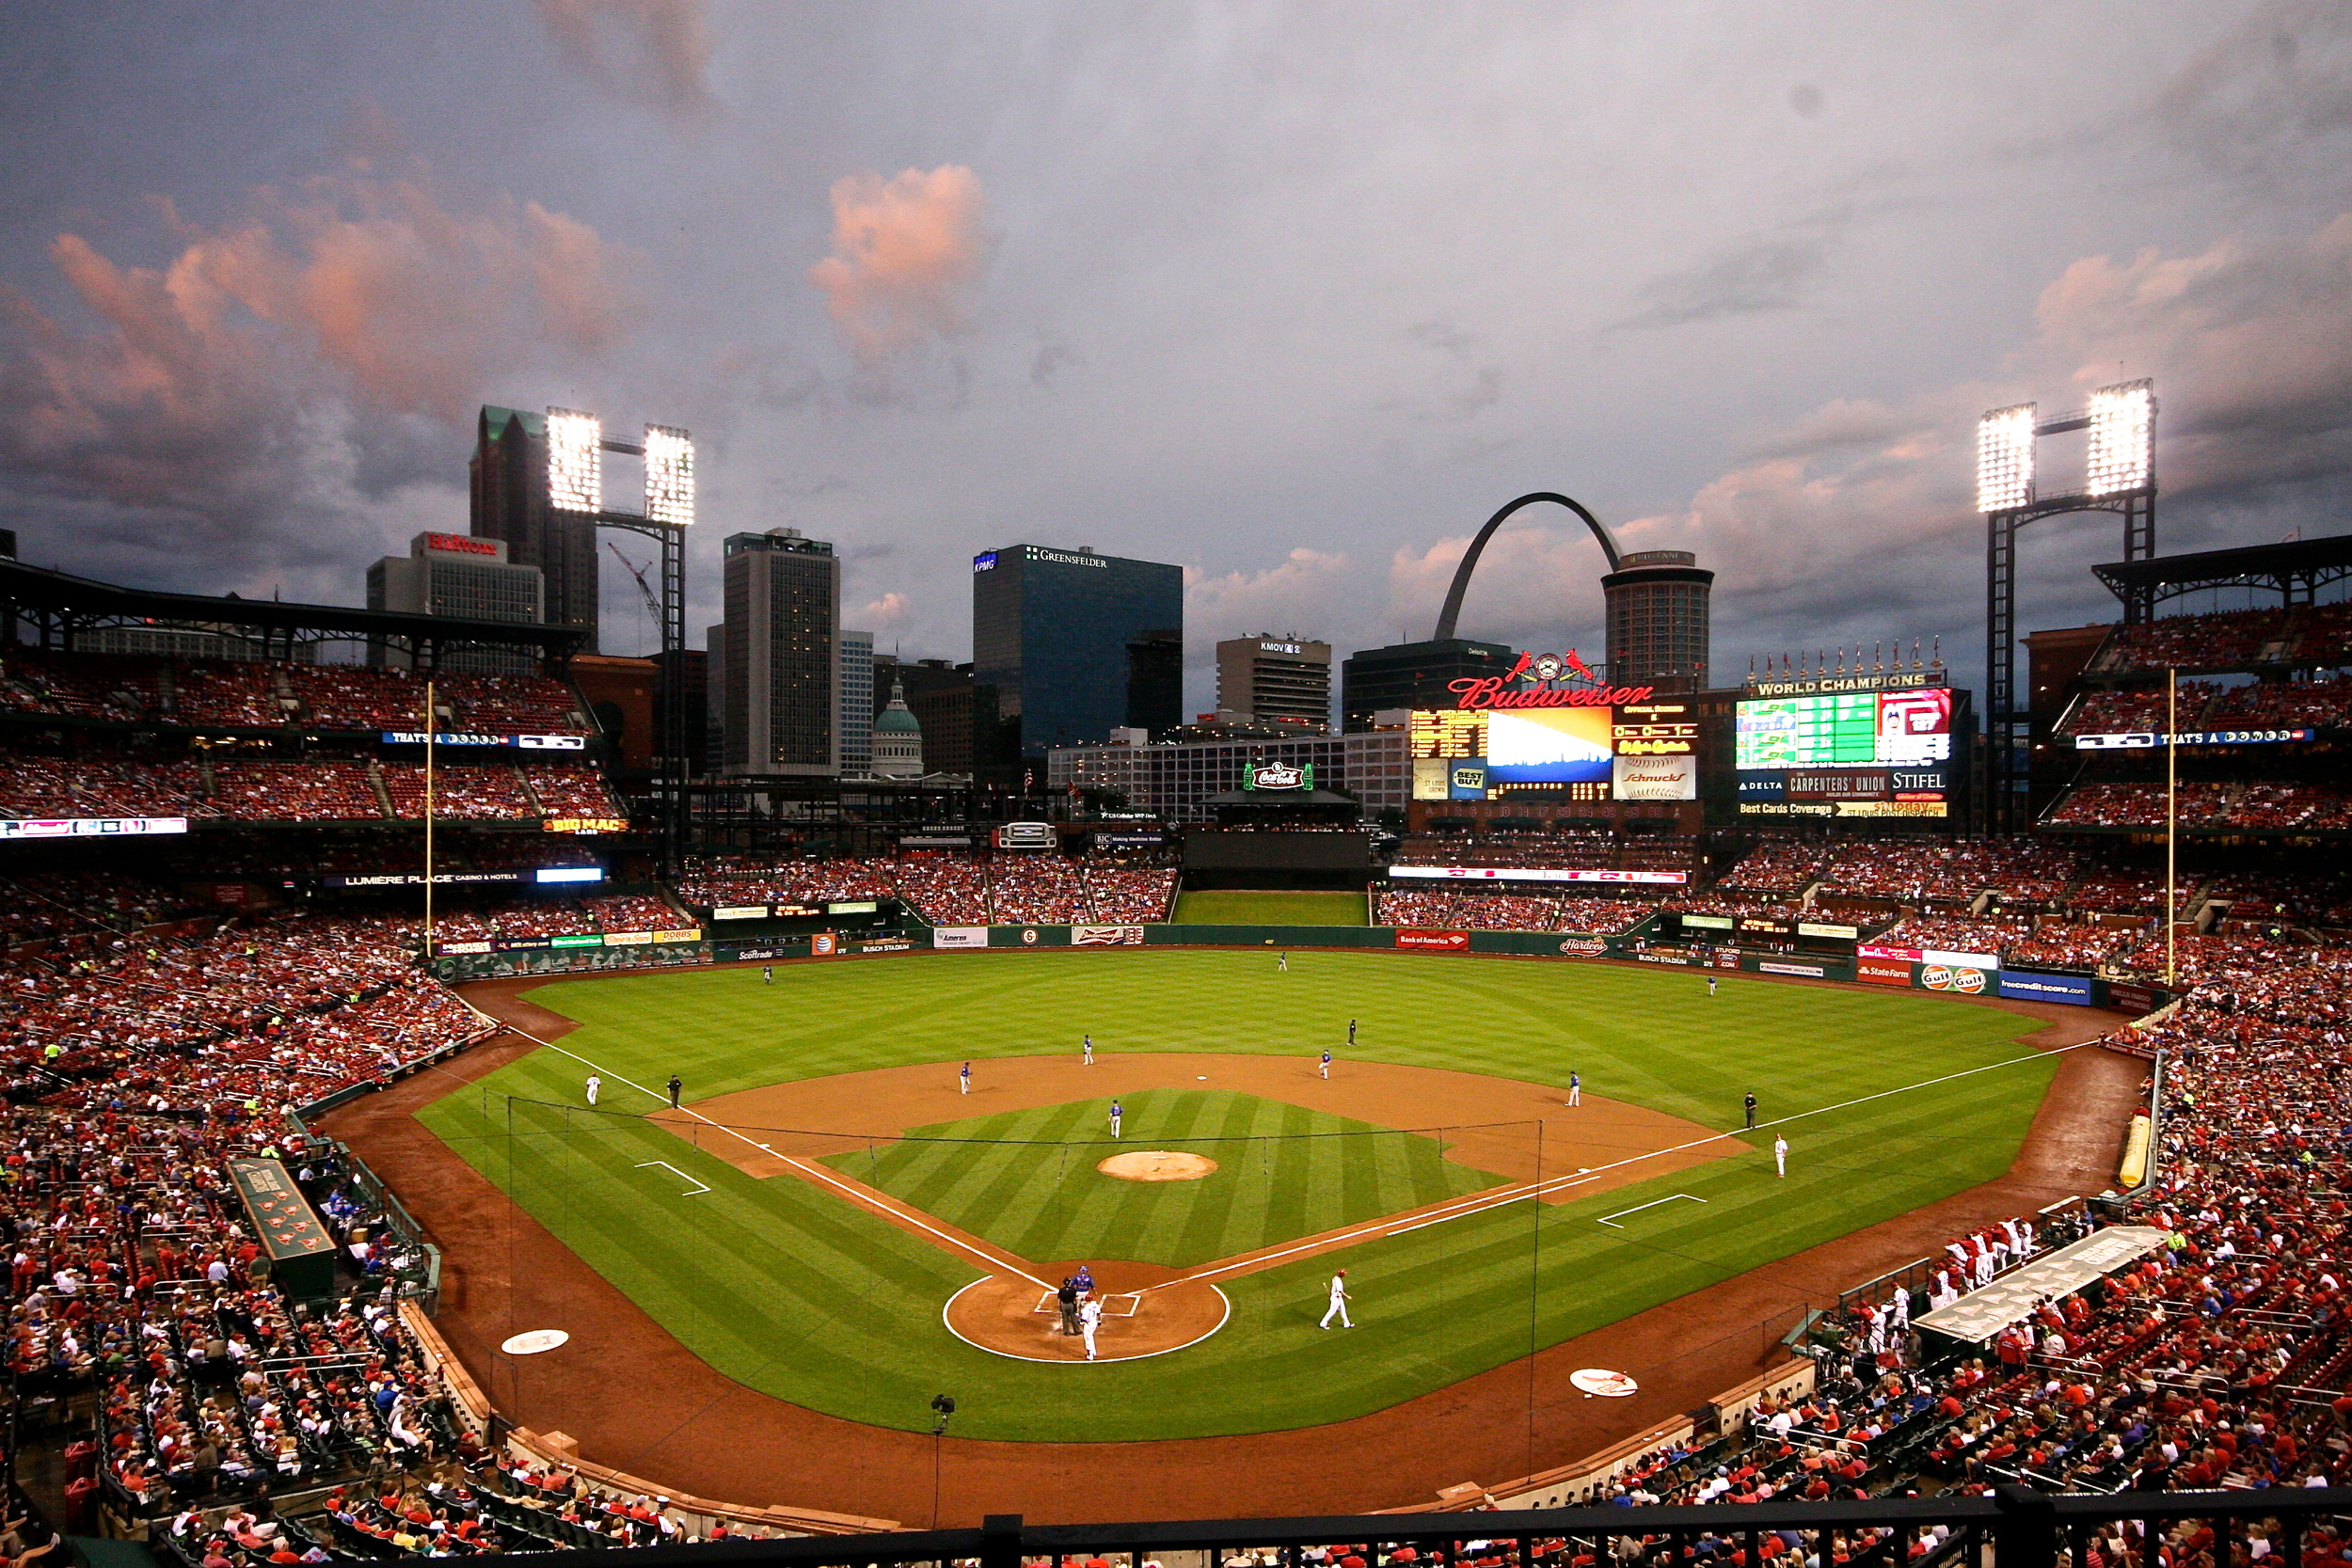 Busch Stadium in the twilight